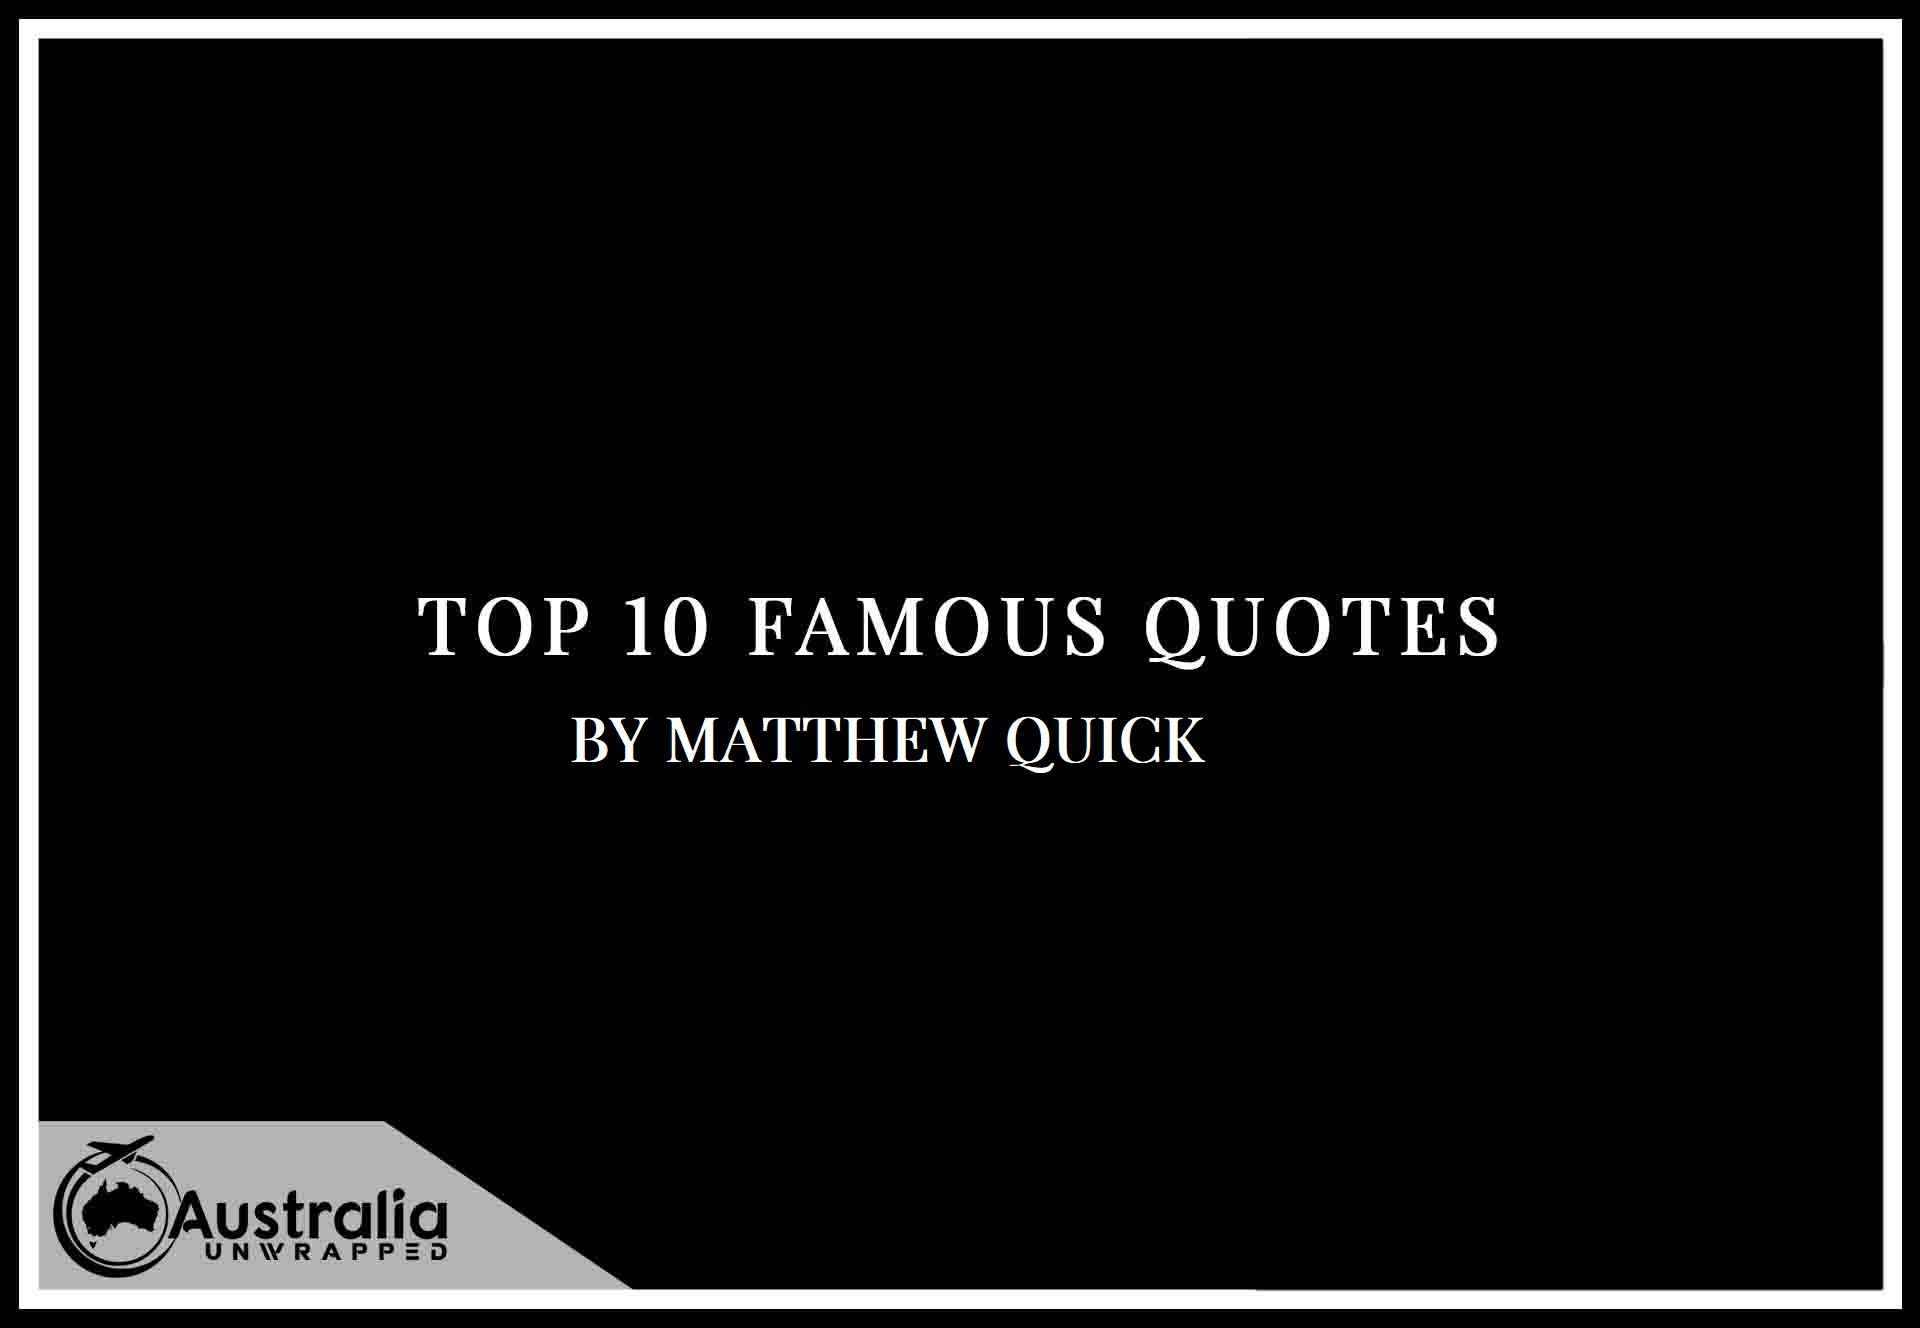 Top 10 Famous Quotes by Author Matthew Quick